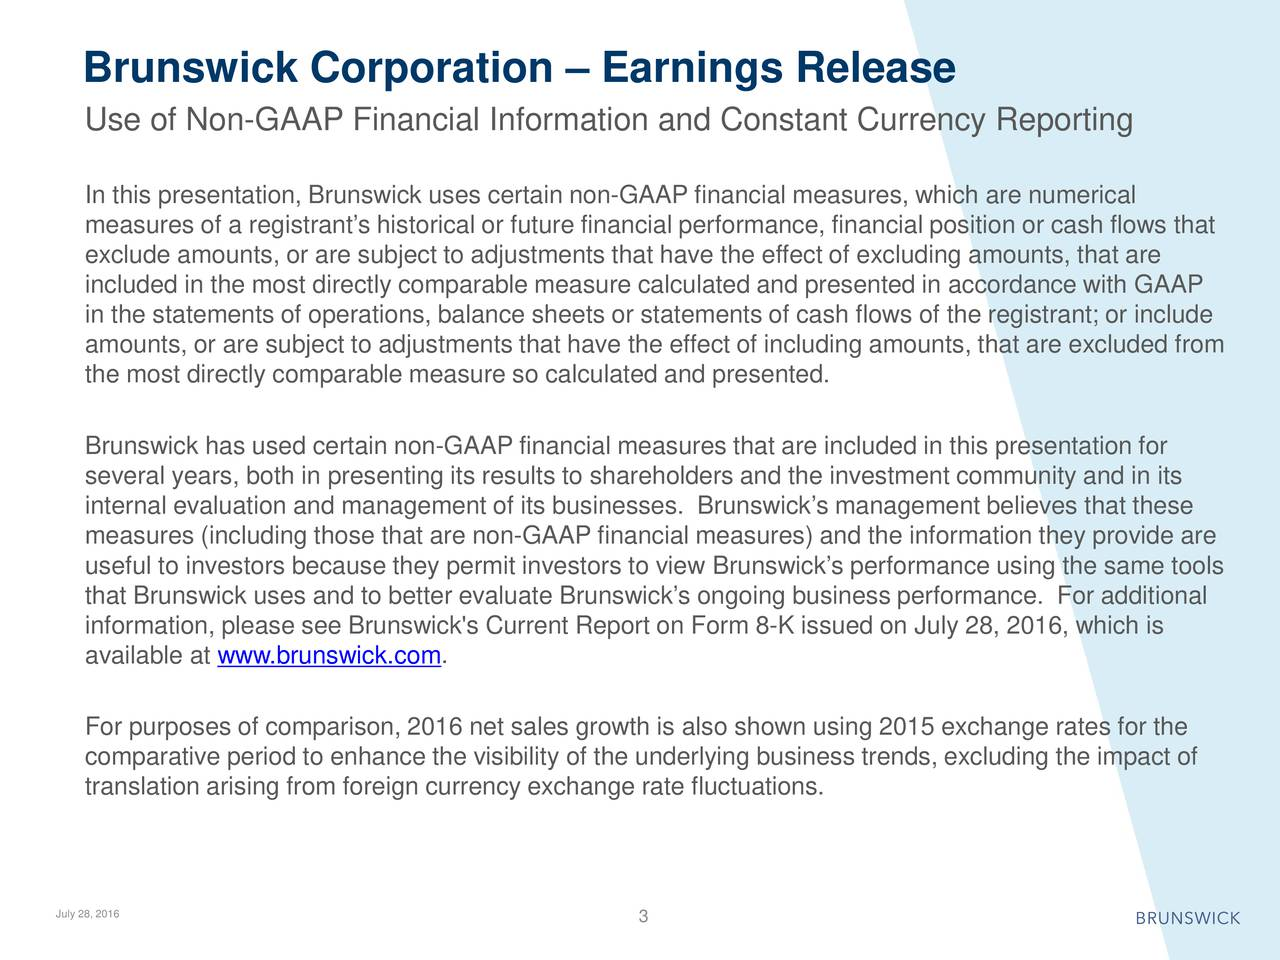 Use of Non-GAAP Financial Information and Constant Currency Reporting In this presentation, Brunswick uses certain non-GAAP financial measures, which are numerical measures of a registrants historical or future financial performance, financial position or cash flows that exclude amounts, or are subject to adjustments that have the effect of excluding amounts, that are included in the most directly comparable measure calculated and presented in accordance with GAAP in the statements of operations, balance sheets or statements of cash flows of the registrant; or include amounts, or are subject to adjustments that have the effect of including amounts, that are excluded from the most directly comparable measure so calculated and presented. Brunswick has used certain non-GAAP financial measures that are included in this presentation for several years, both in presenting its results to shareholders and the investment community and in its internal evaluation and management of its businesses. Brunswicks management believes that these measures (including those that are non-GAAP financial measures) and the information they provide are useful to investors because they permit investors to view Brunswicks performance using the same tools that Brunswick uses and to better evaluate Brunswicks ongoing business performance. For additional information, please see Brunswick's Current Report on Form 8-K issued onJuly 28, 2016, which is available at www.brunswick.com . For purposes of comparison, 2016 net sales growth is also shown using 2015 exchange rates for the comparative period to enhance the visibility of the underlying businesstrends, excluding the impact of translation arising from foreign currency exchange rate fluctuations. July 28, 2016 3